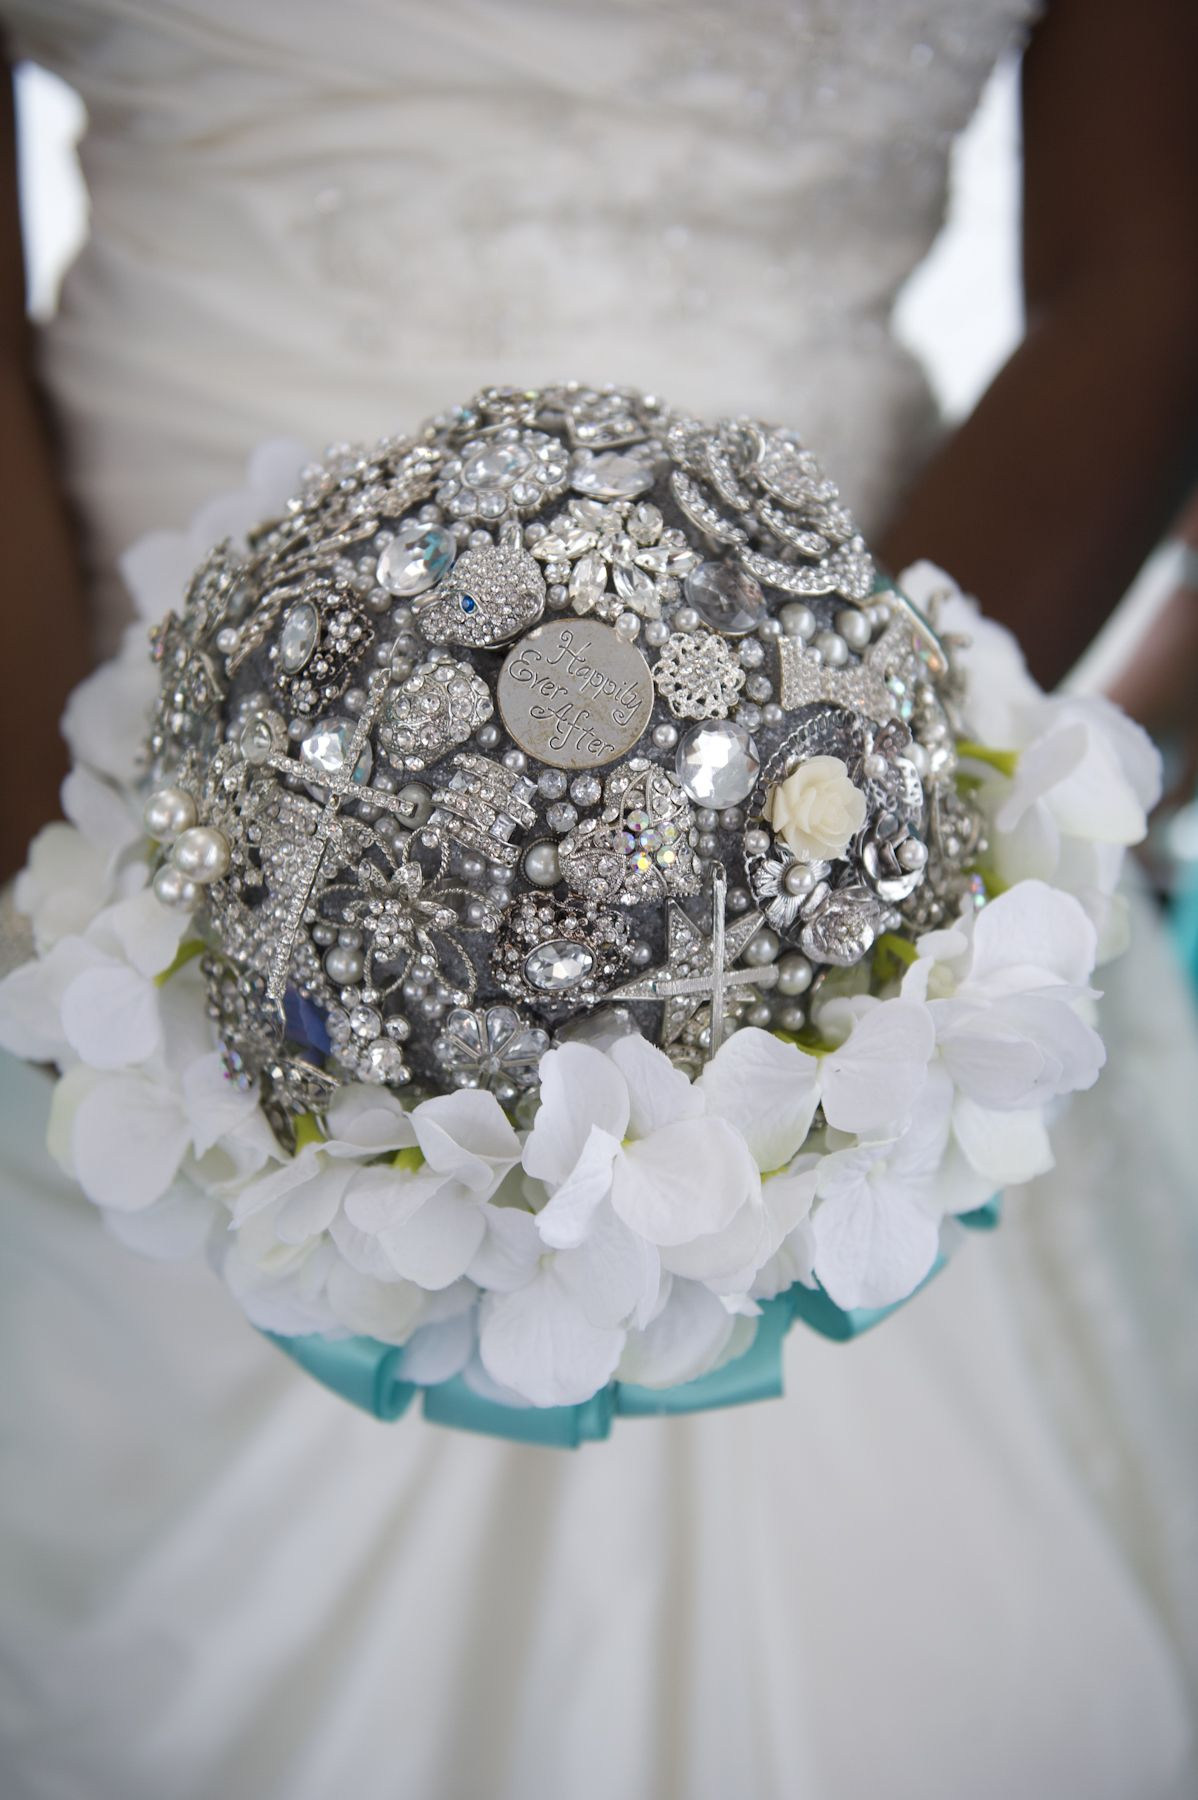 DIY brooch bouquet!!!! So simple once you get the hang of